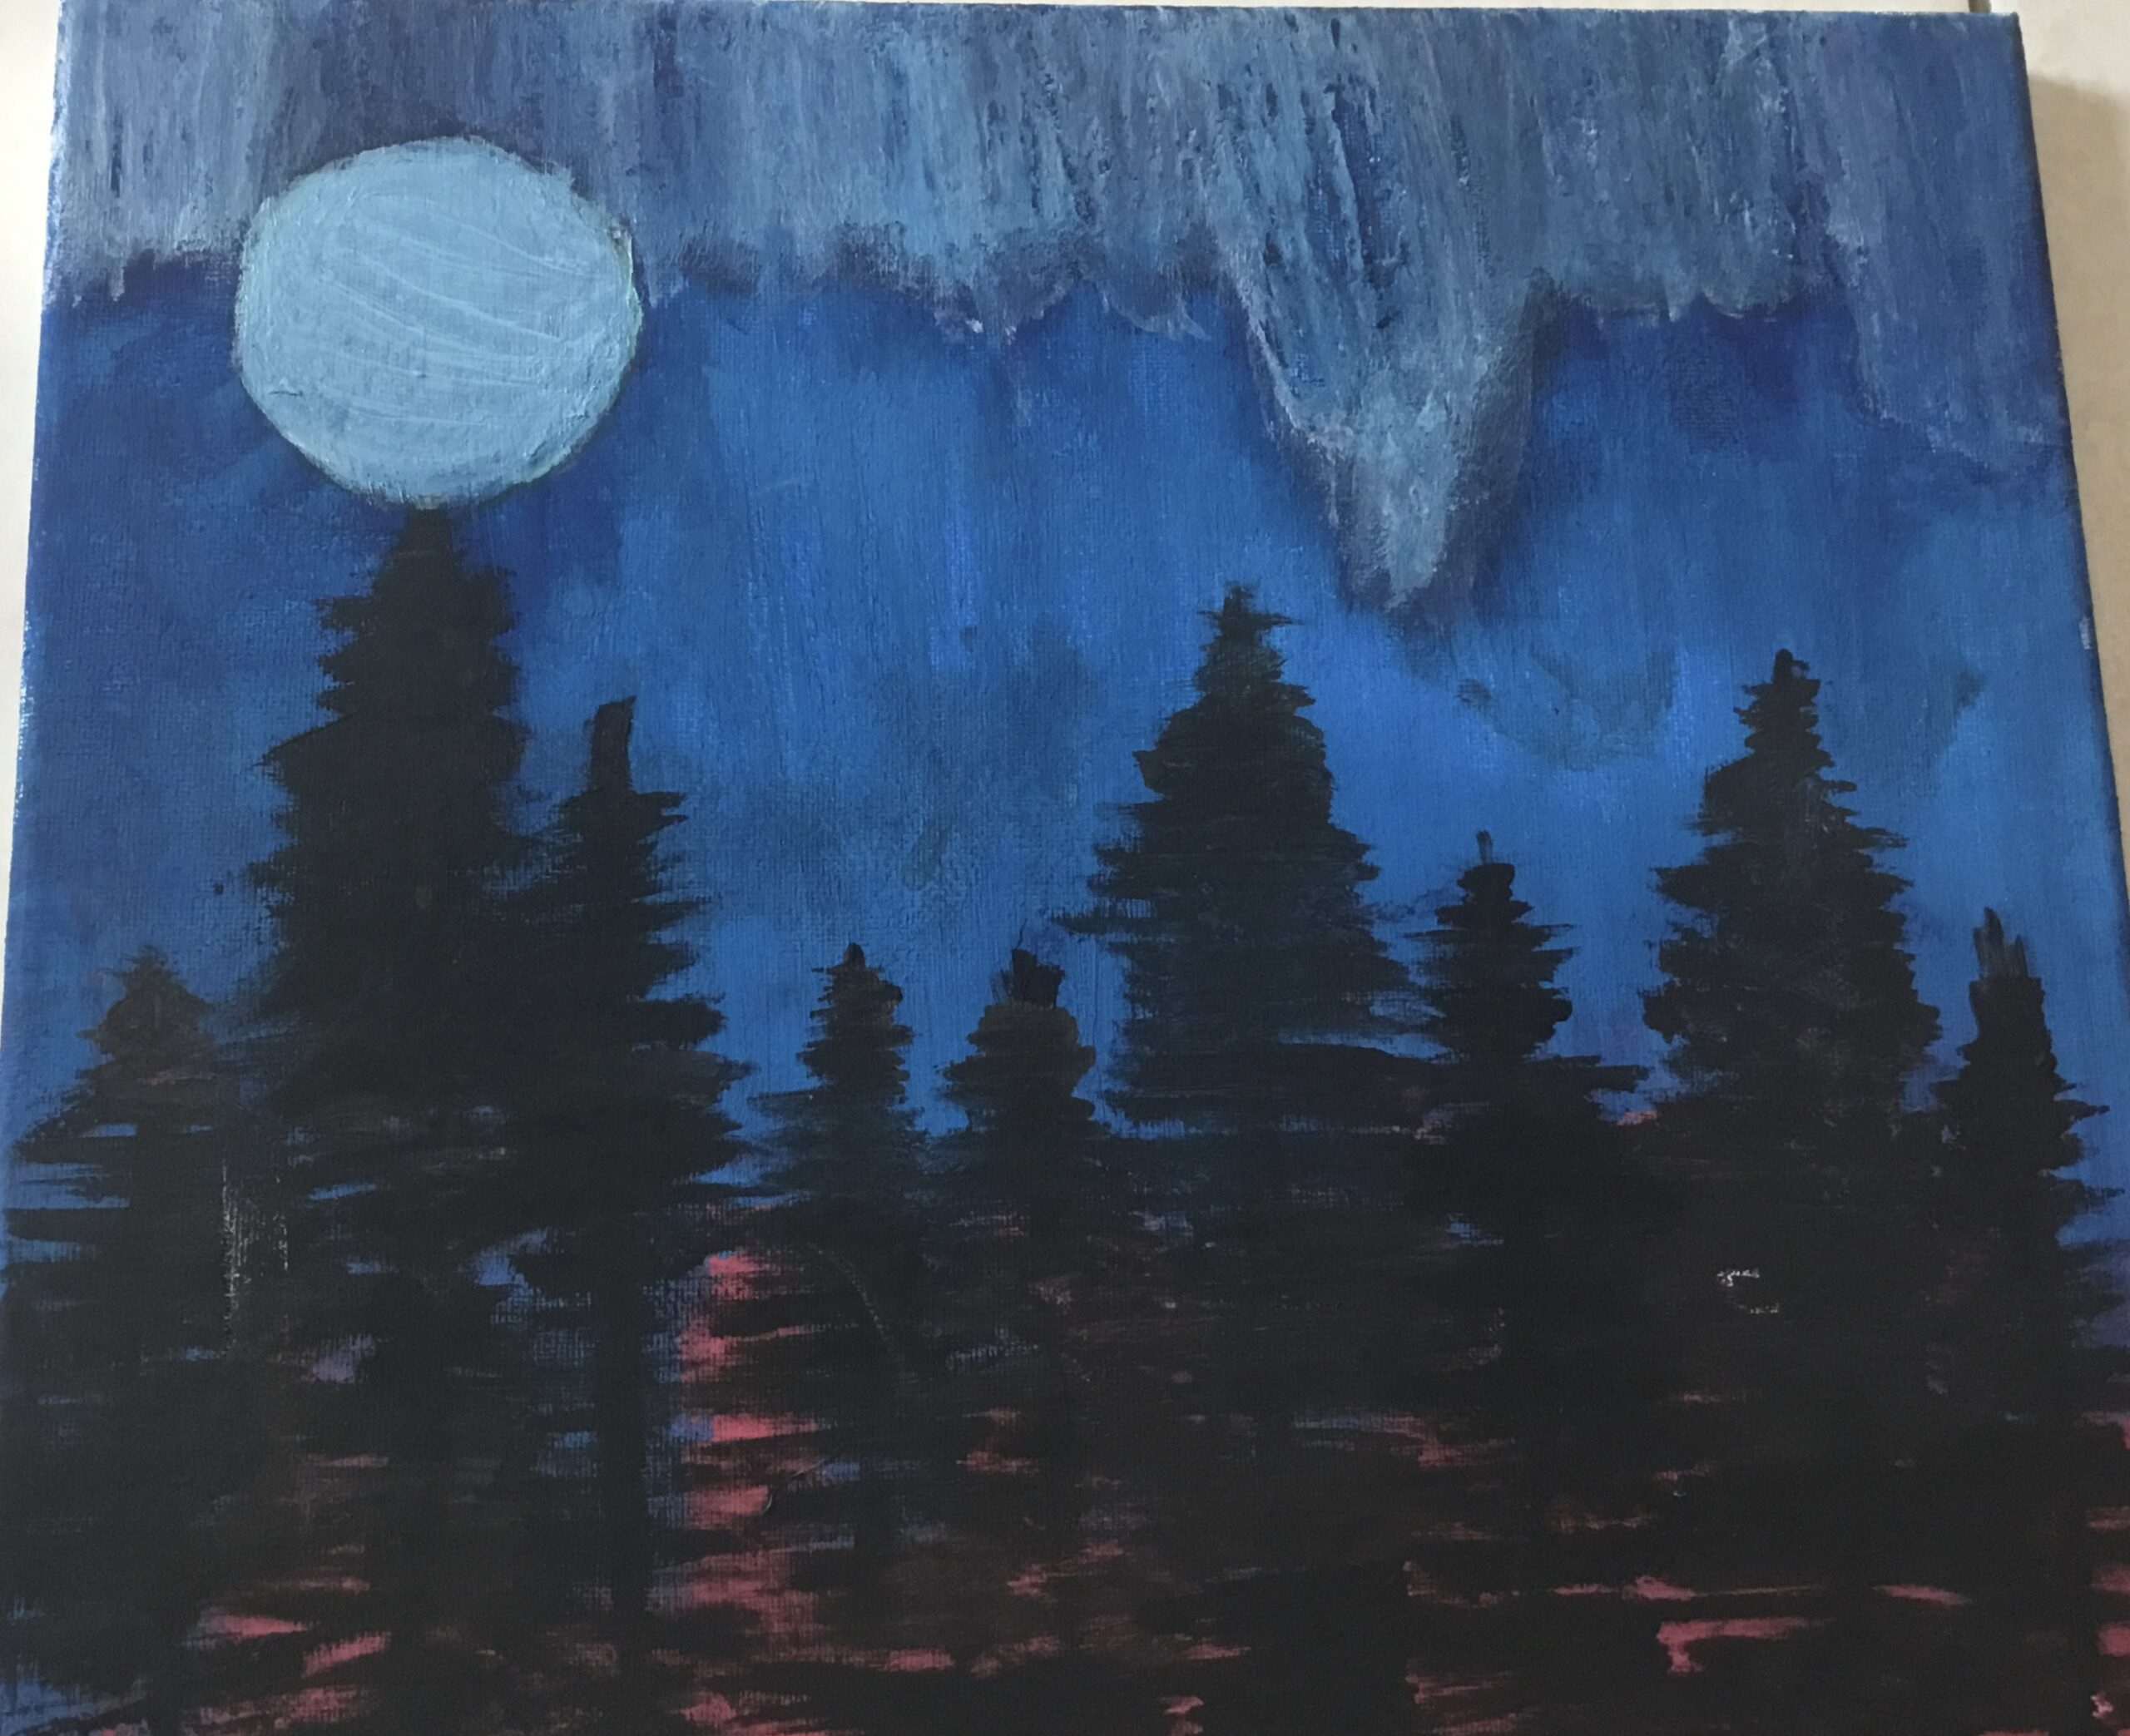 Forest in the Night by Mahnoor Khalid